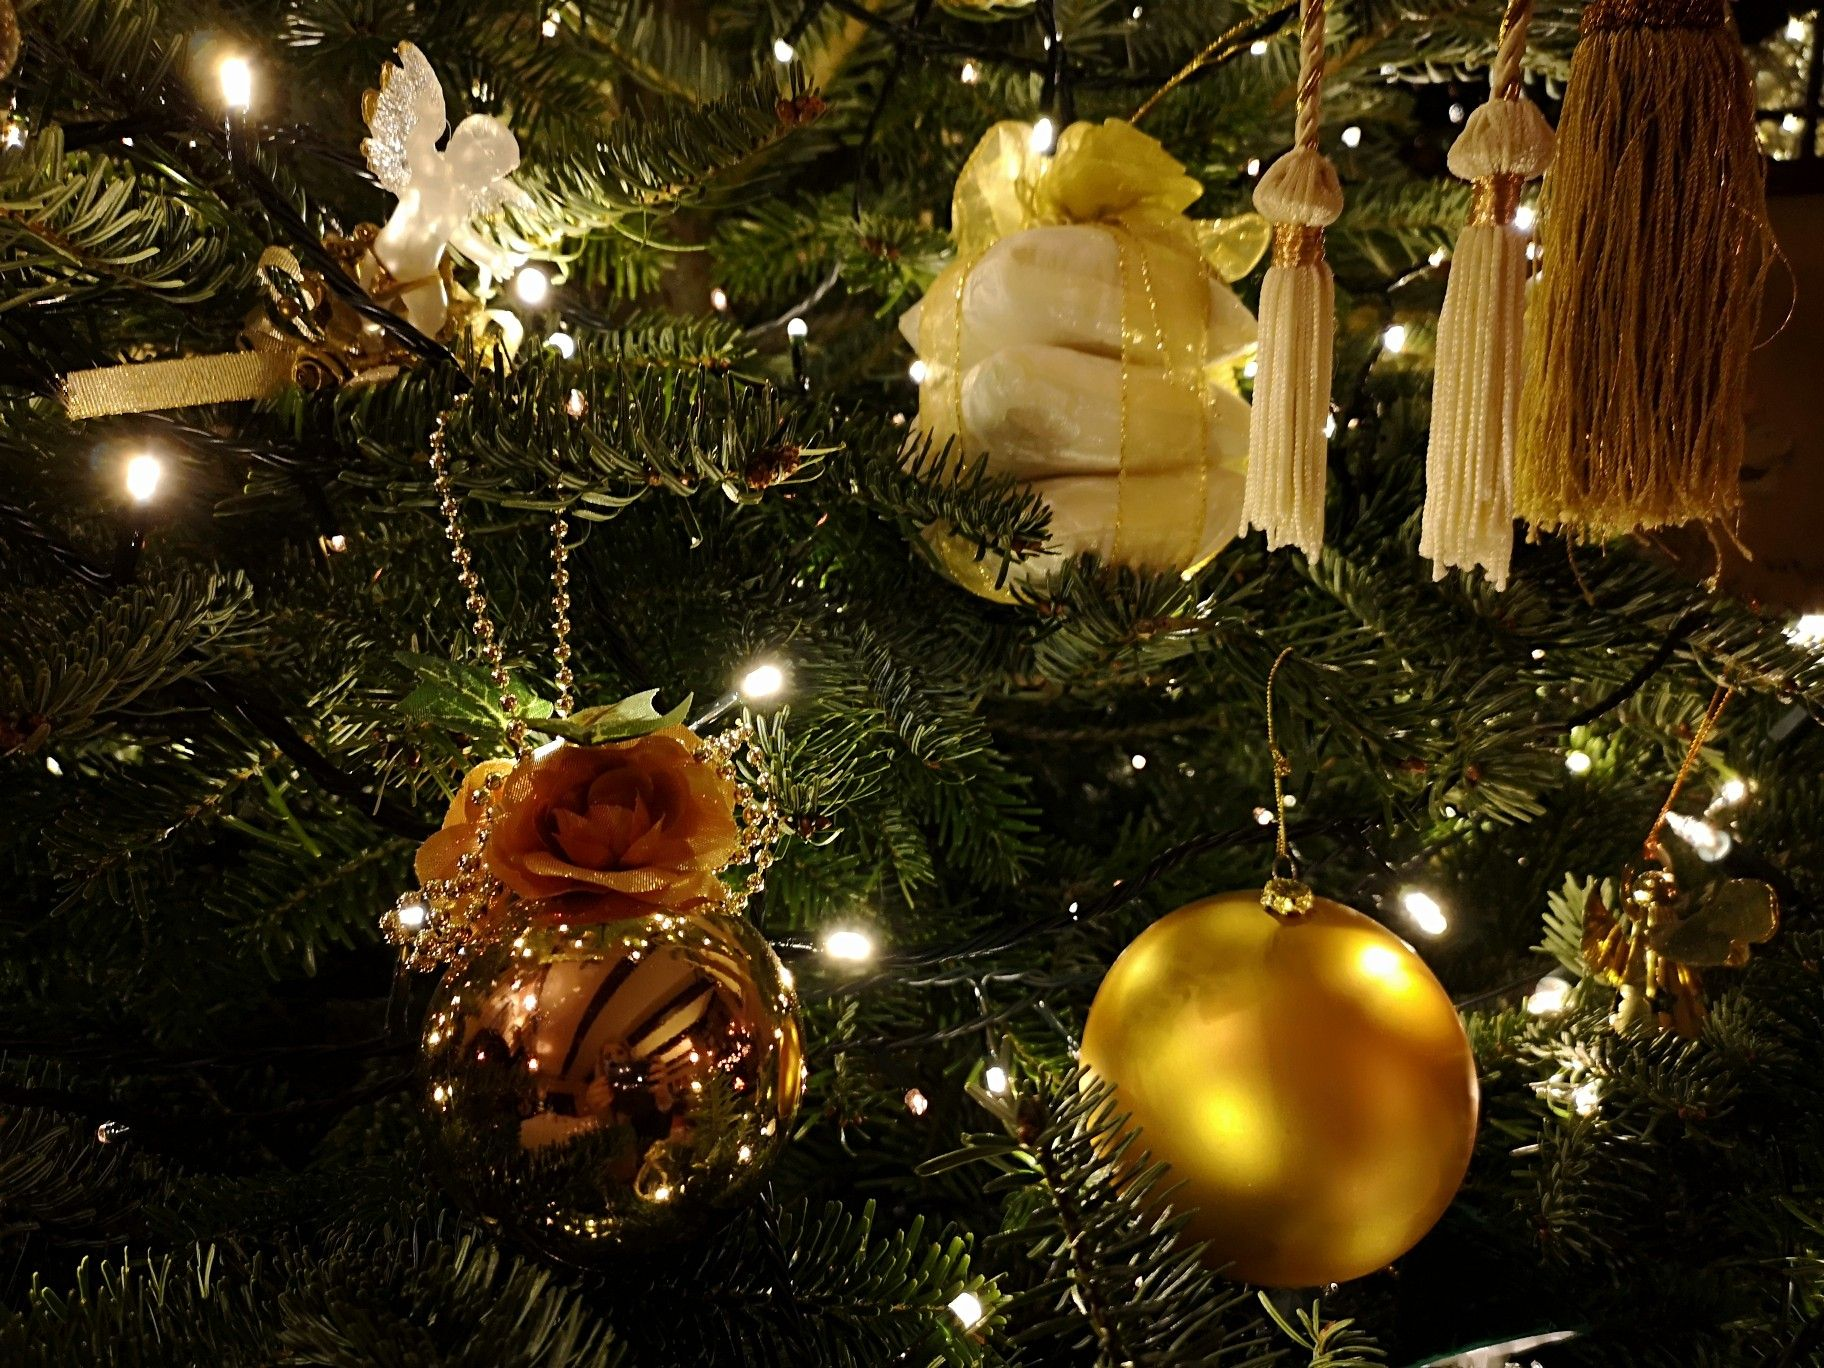 Pin by Daisy Cheer on Christmas Decorations